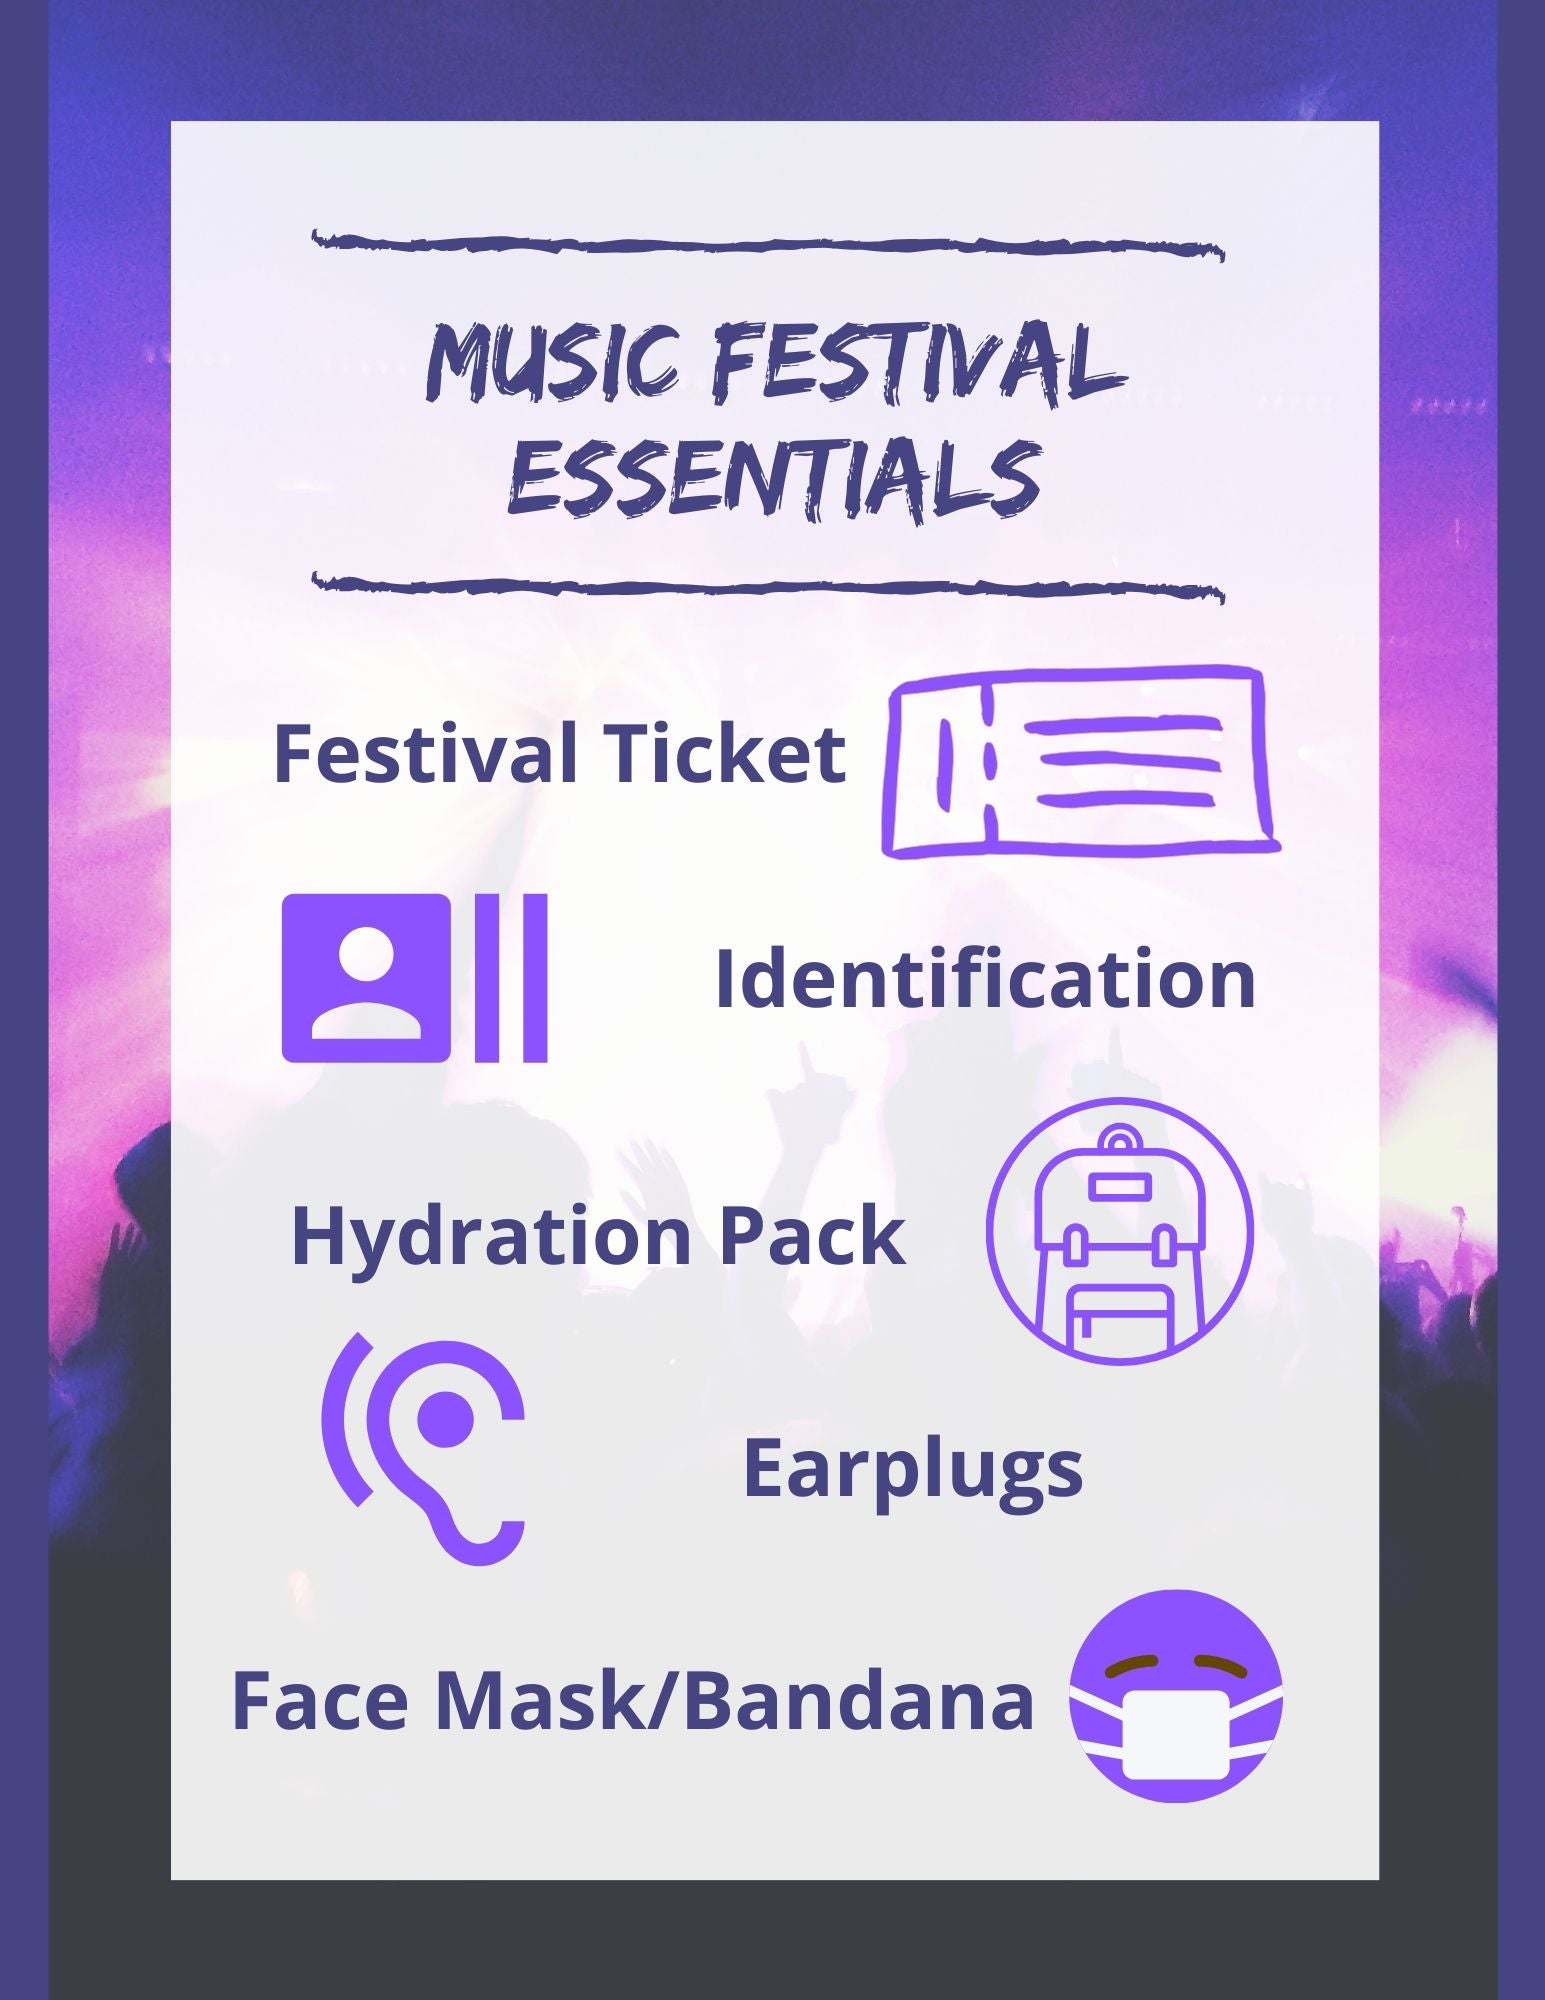 What to bring to a music festival